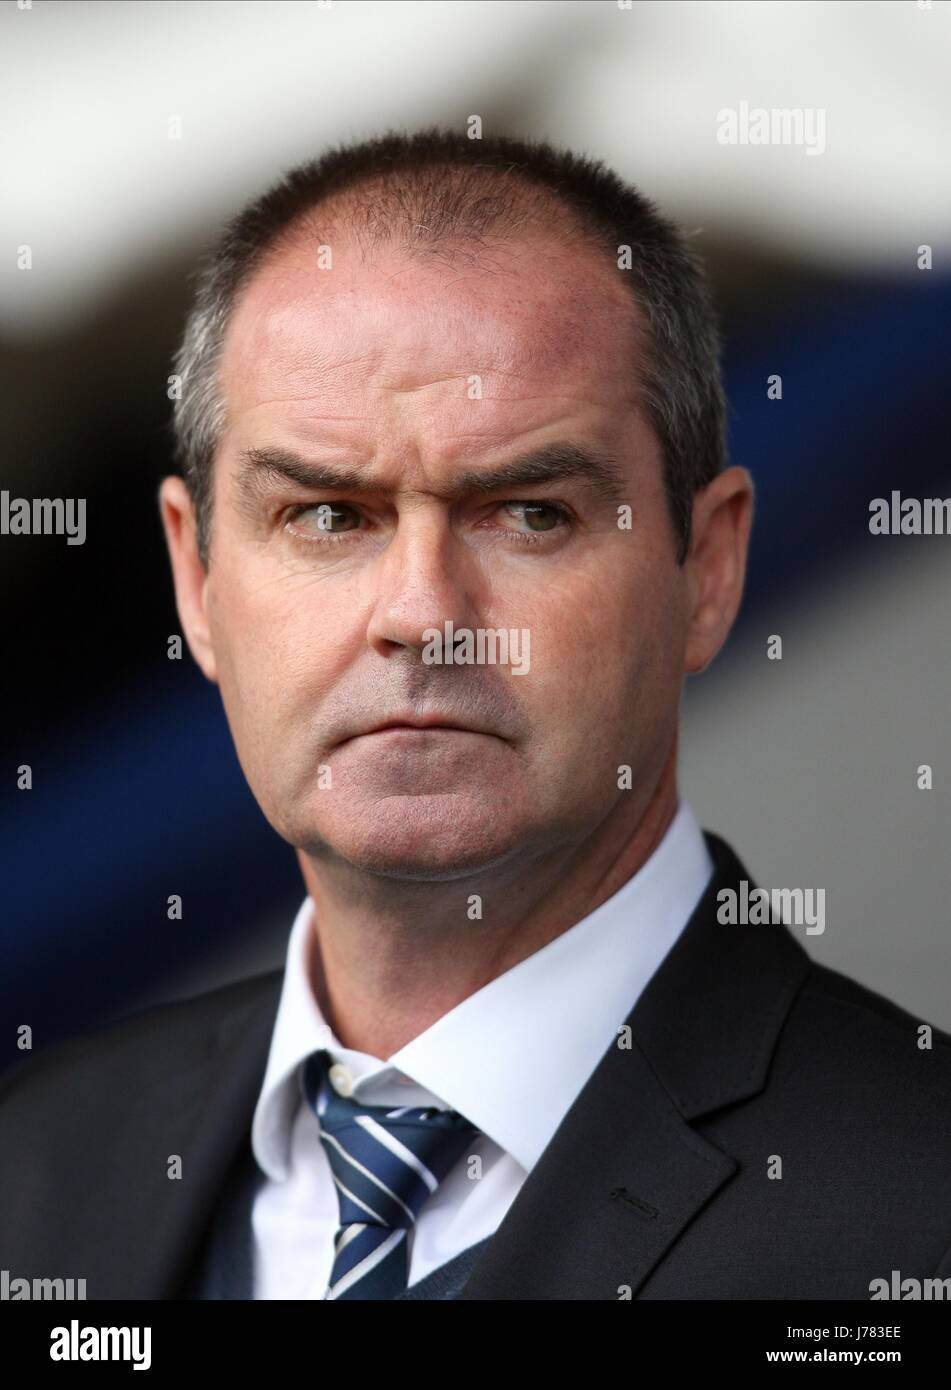 STEVE CLARKE WEST BROMWICH V MANCHESTER CIT THE HAWTHORNS WEST BROMWICH ENGLAND 20 October 2012 - Stock Image